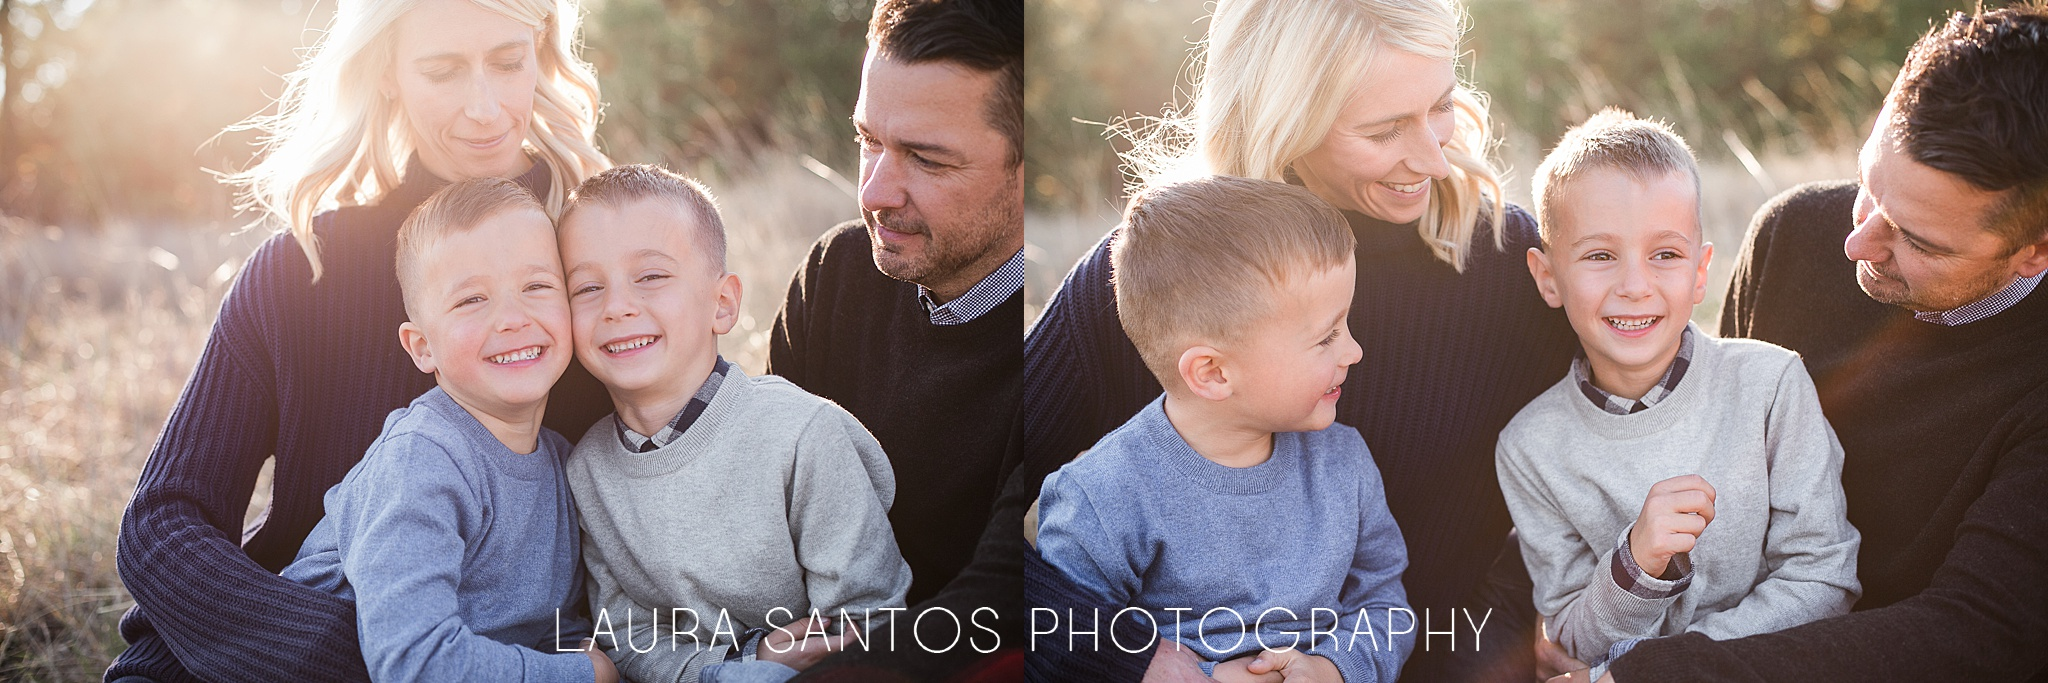 Laura Santos Photography Portland Oregon Family Photographer_0816.jpg